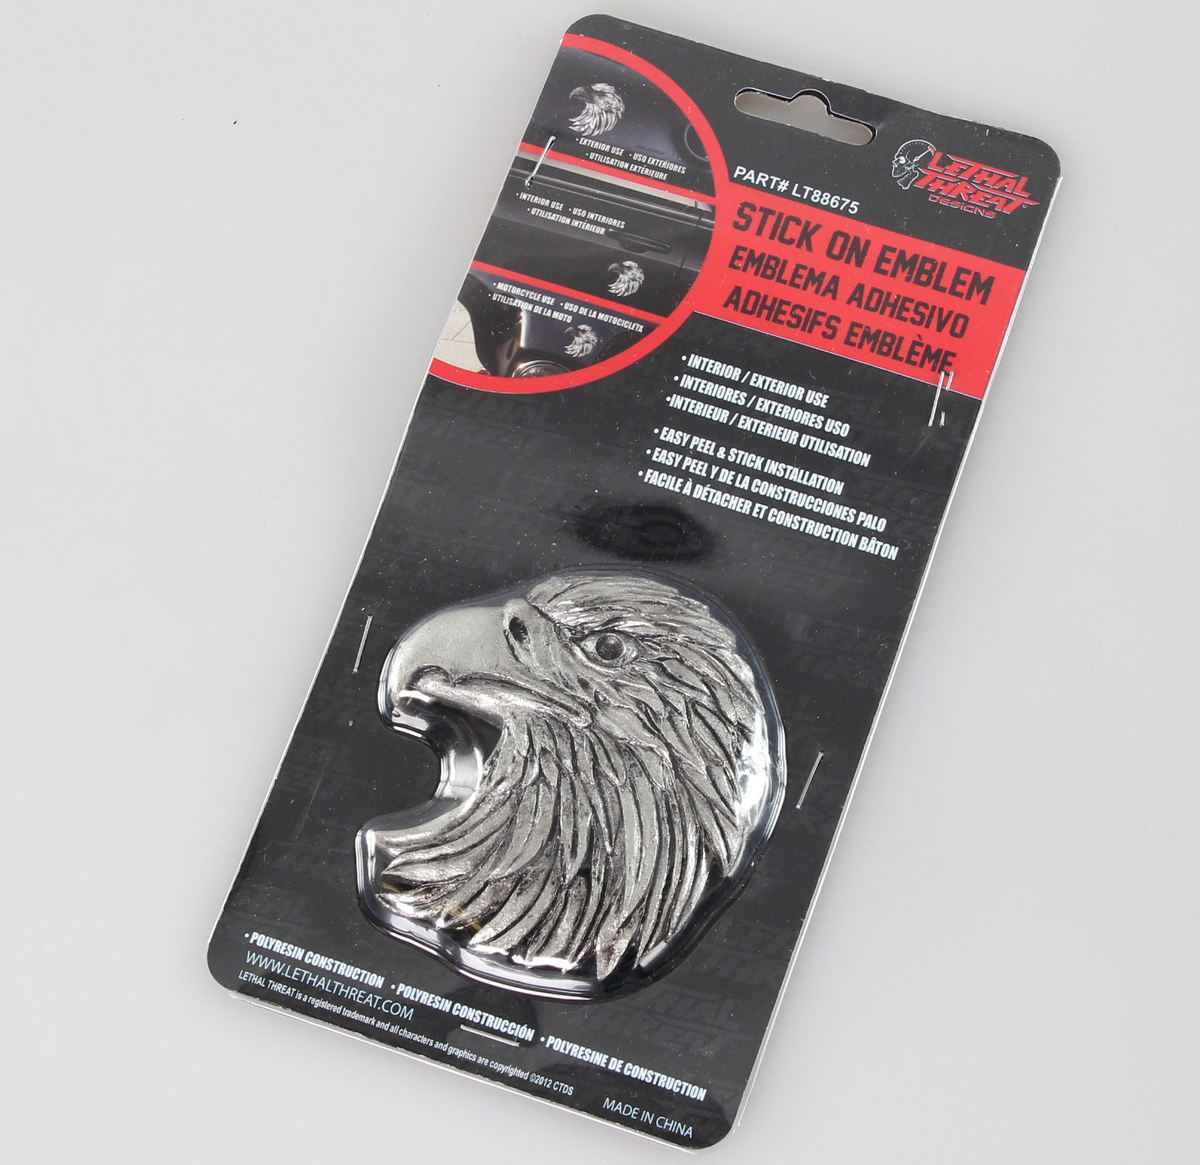 dekorace (na auto) LETHAL THREAT - Eagle Head Emblem (Eagle Beak Facing Left) - LT88675